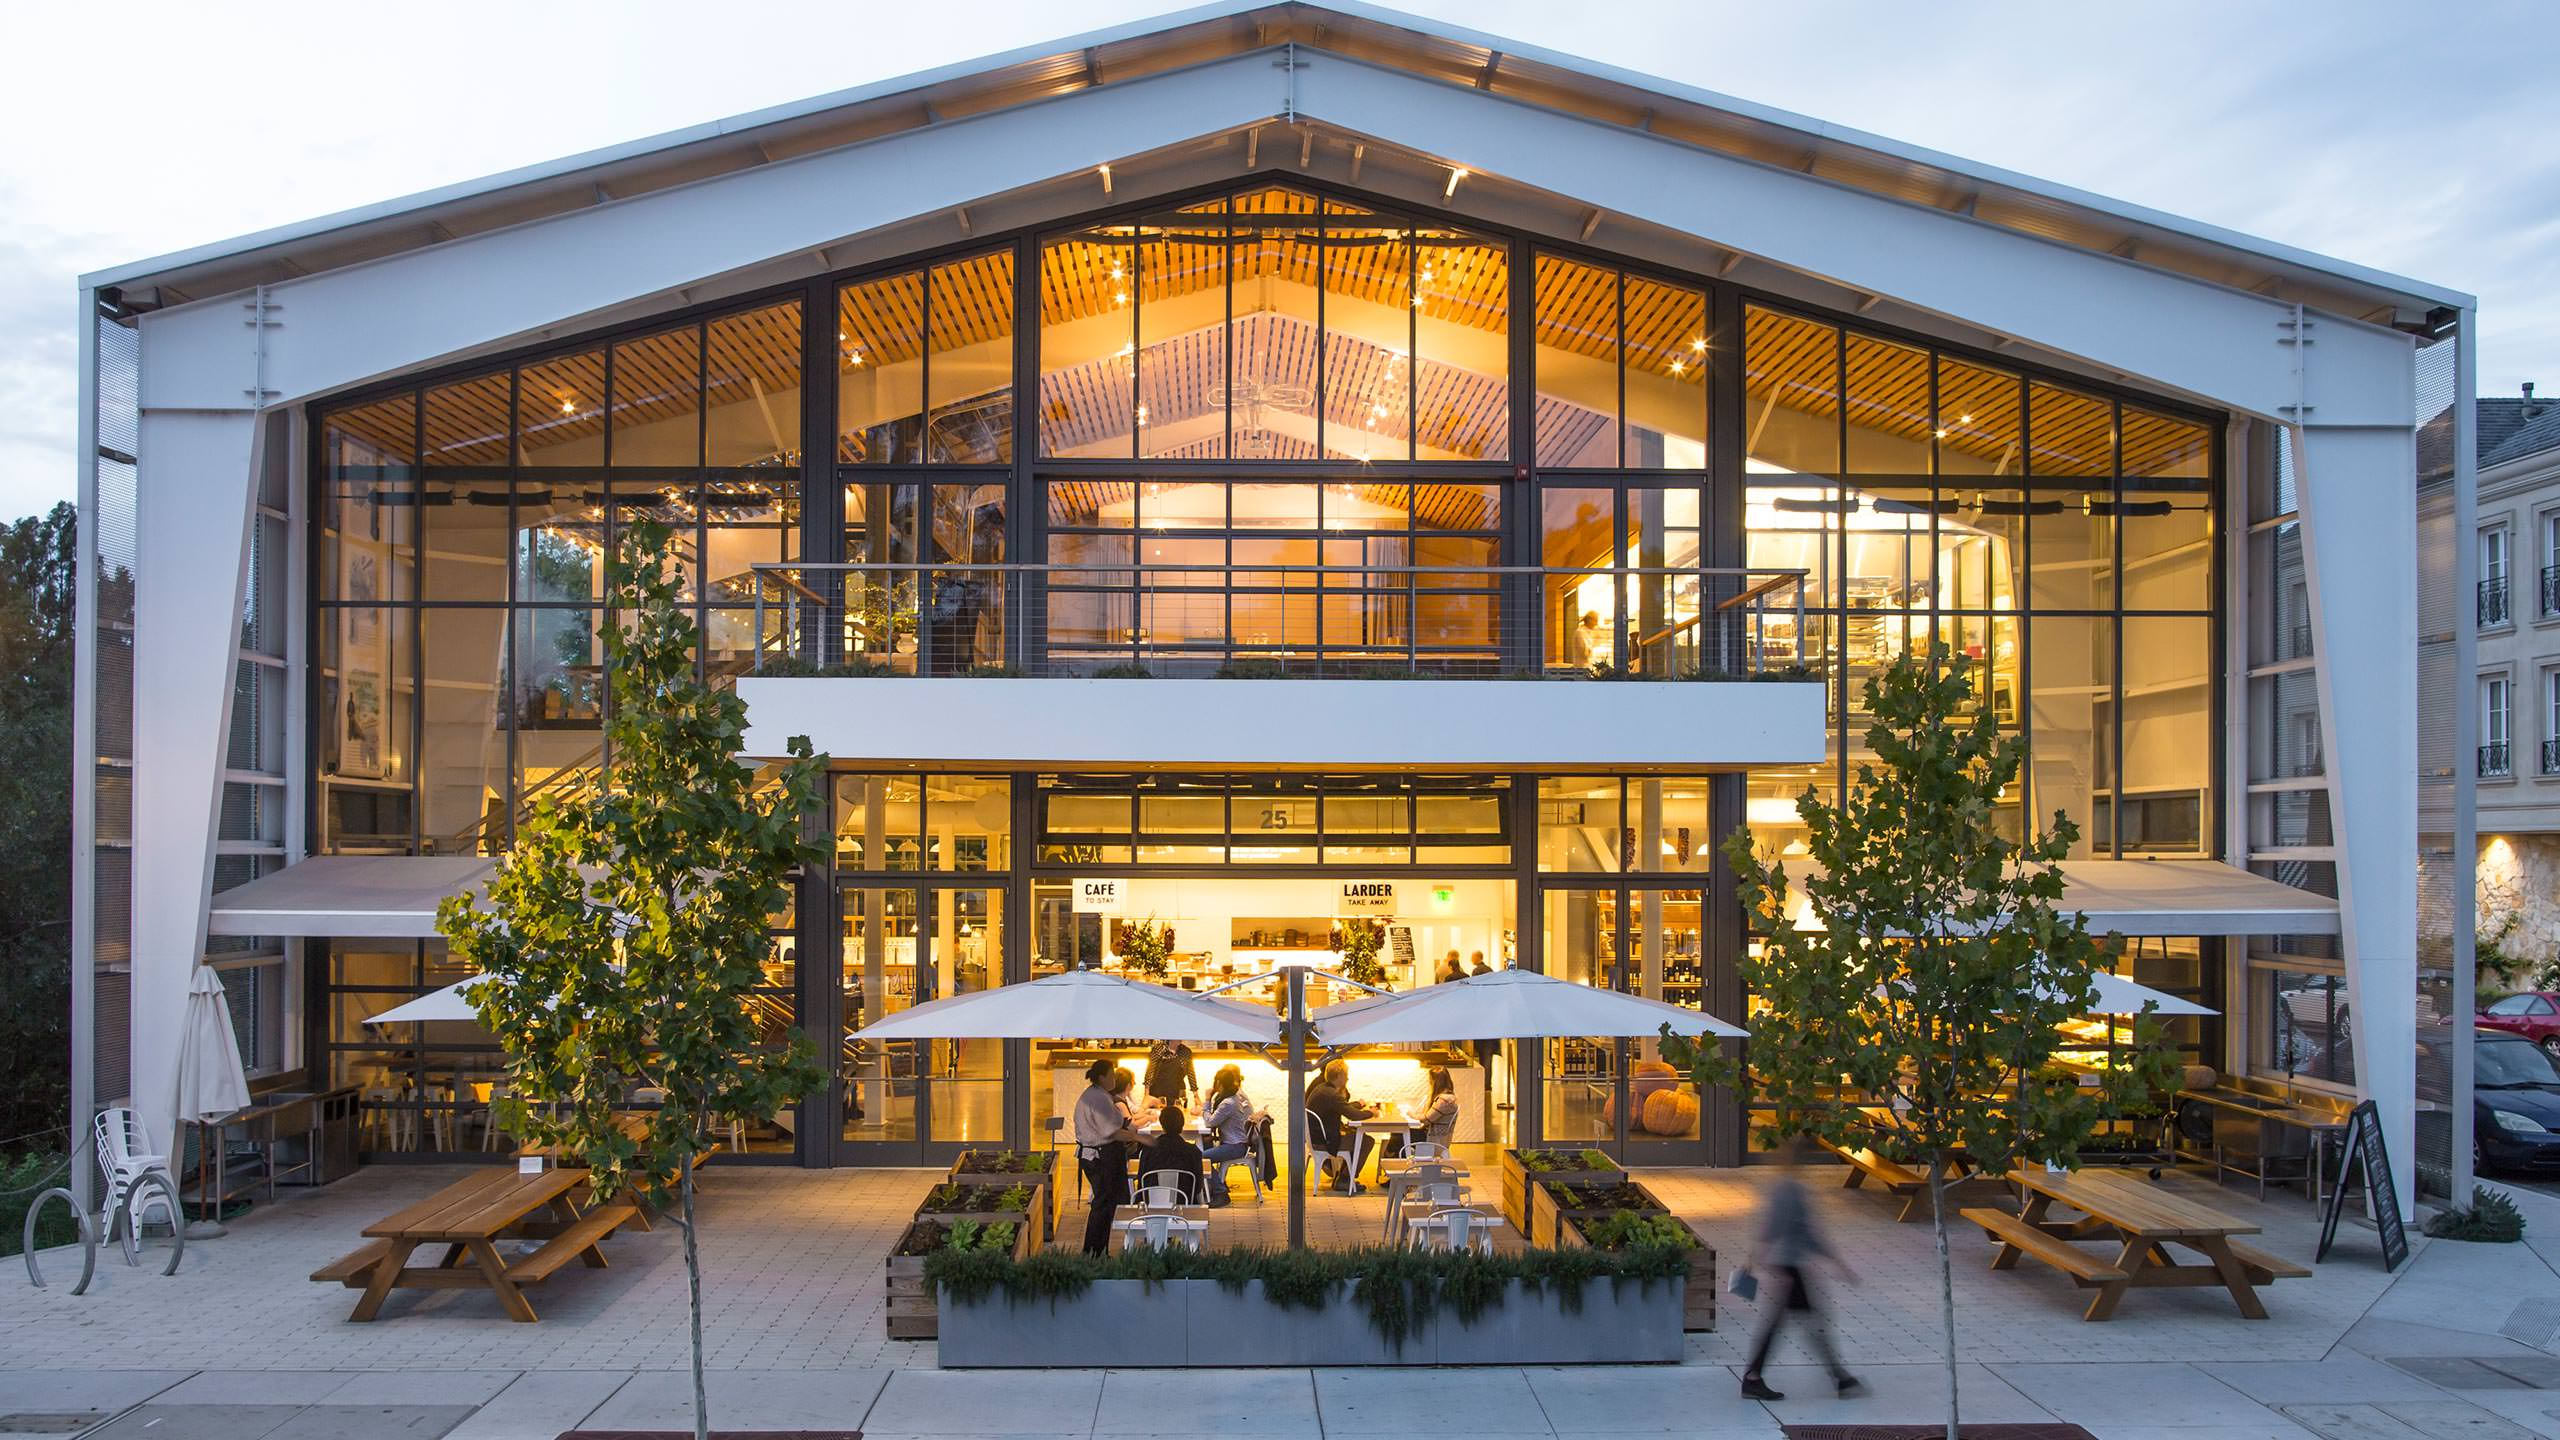 Healdsburg SHED Retail Store Exterior - Website Photography